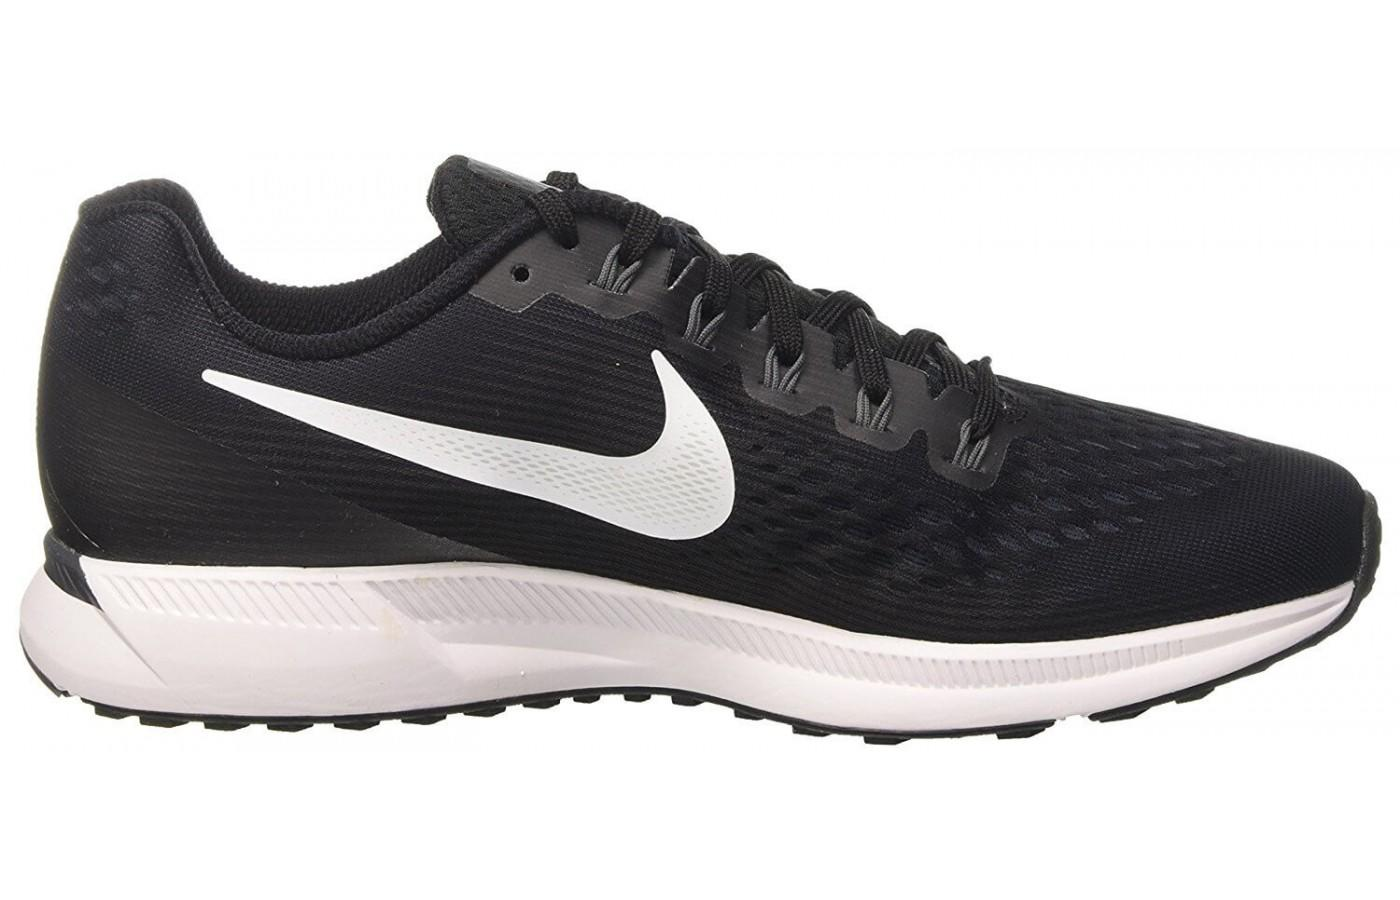 size 40 efd6e efe17 ... the Nike Air Zoom Pegasus 34 is stylish, affordable, and reasonably  priced ...